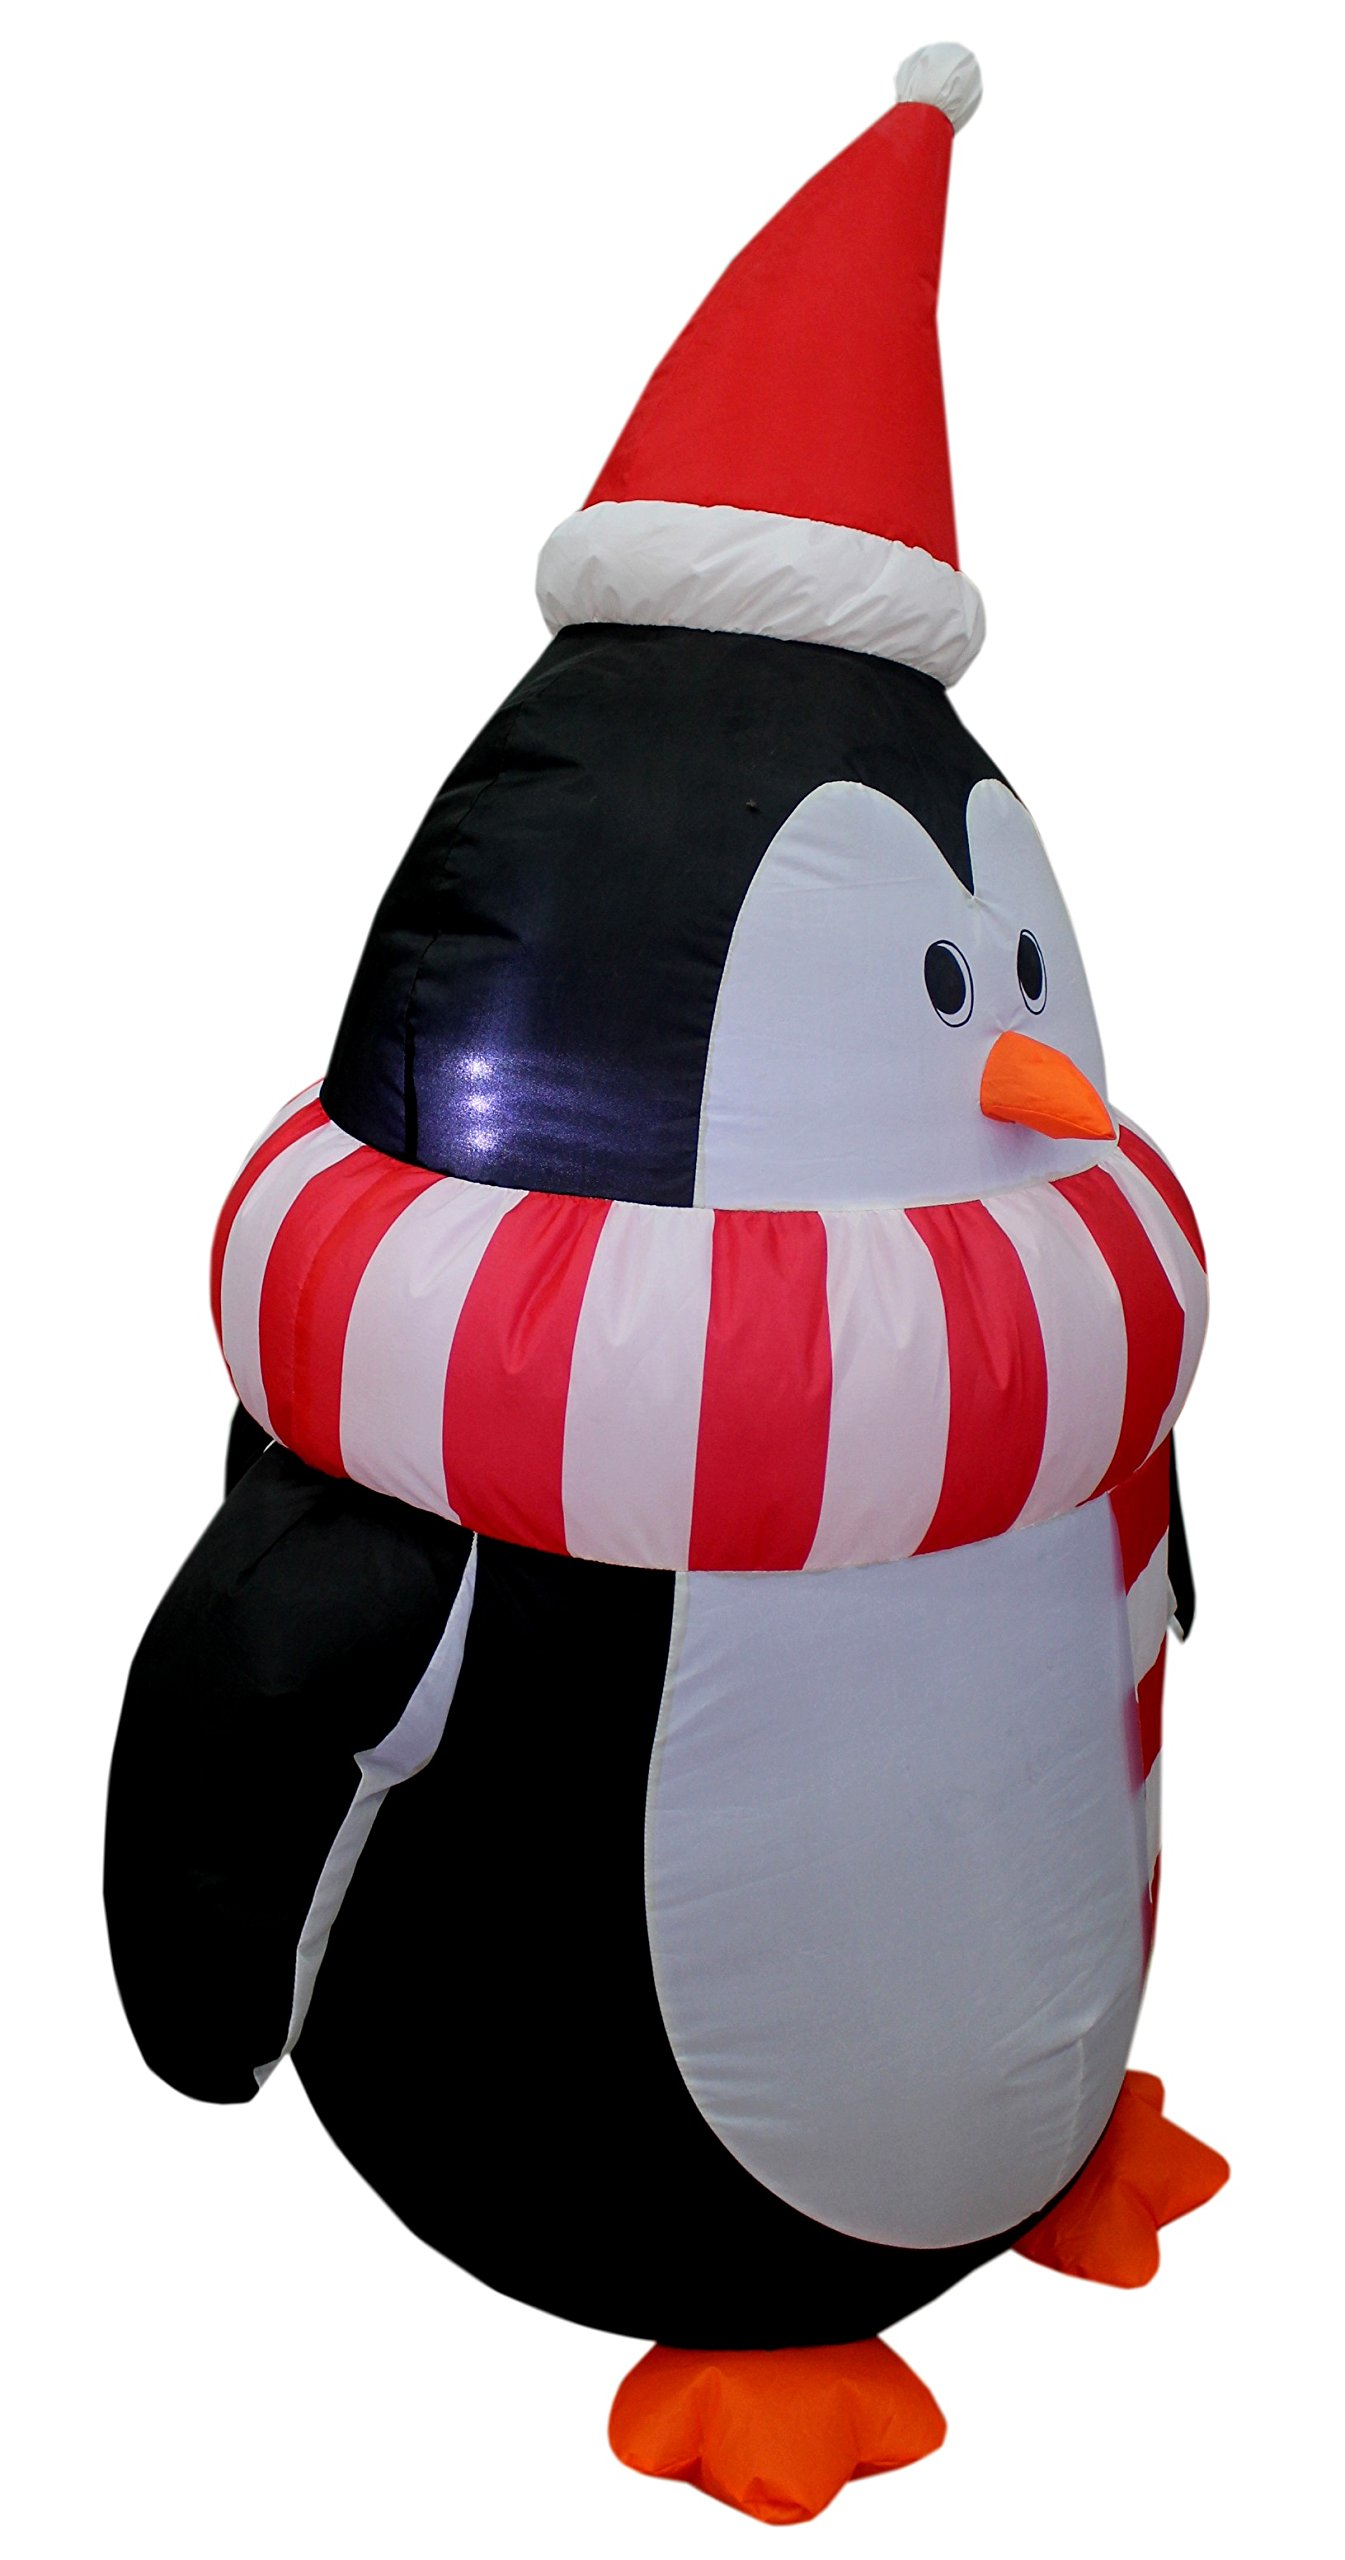 4 Foot Tall Christmas Inflatable Cute Penguin with Scarf Yard Decoration by BZB Goods (Image #2)